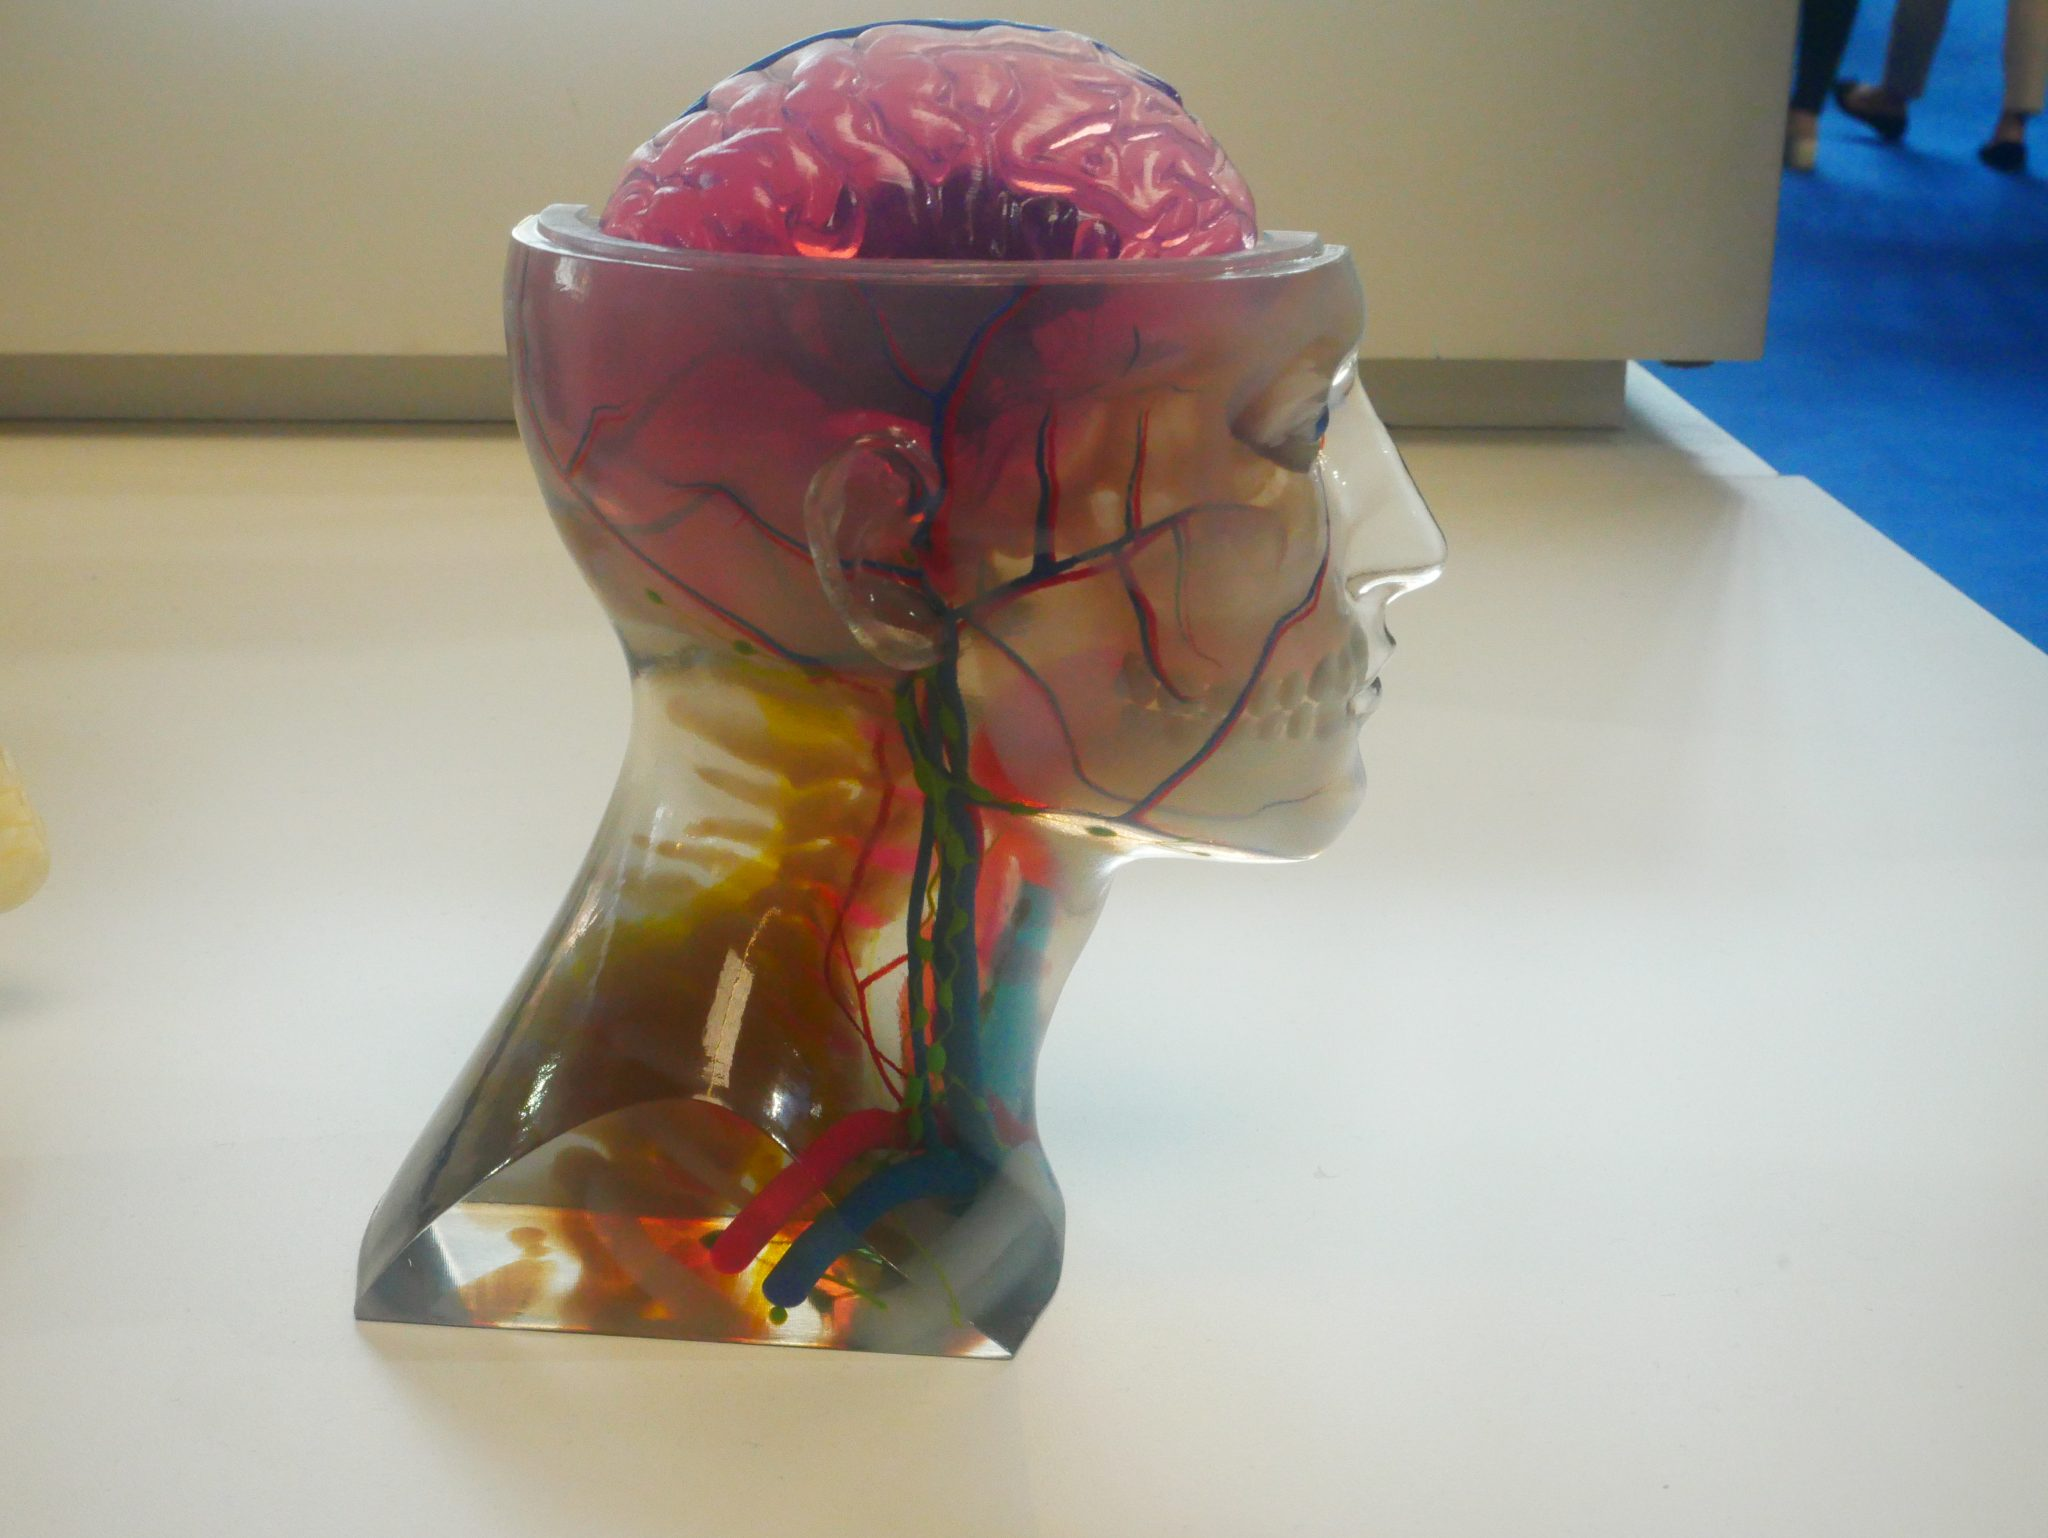 An anatomical model from Avinent printed on the Stratasys J750. Photo by Tia Vialva.